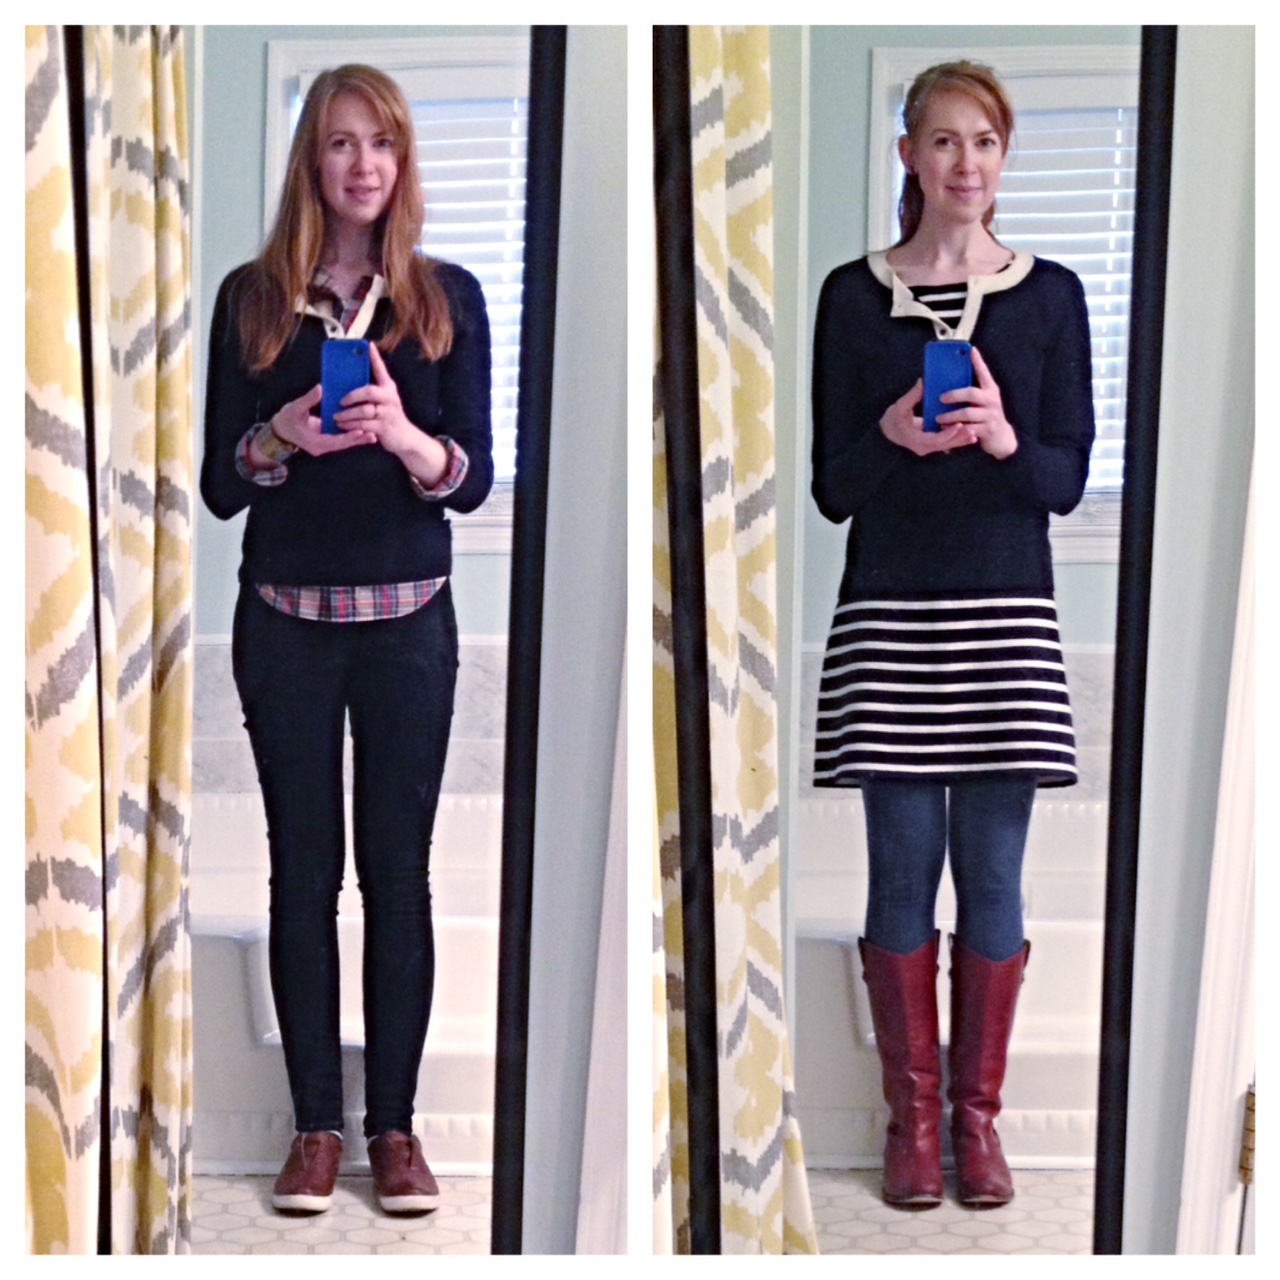 a84e5ddae28c0 Navy cashmere over plaid with jeans and over stripes with leggings and boots